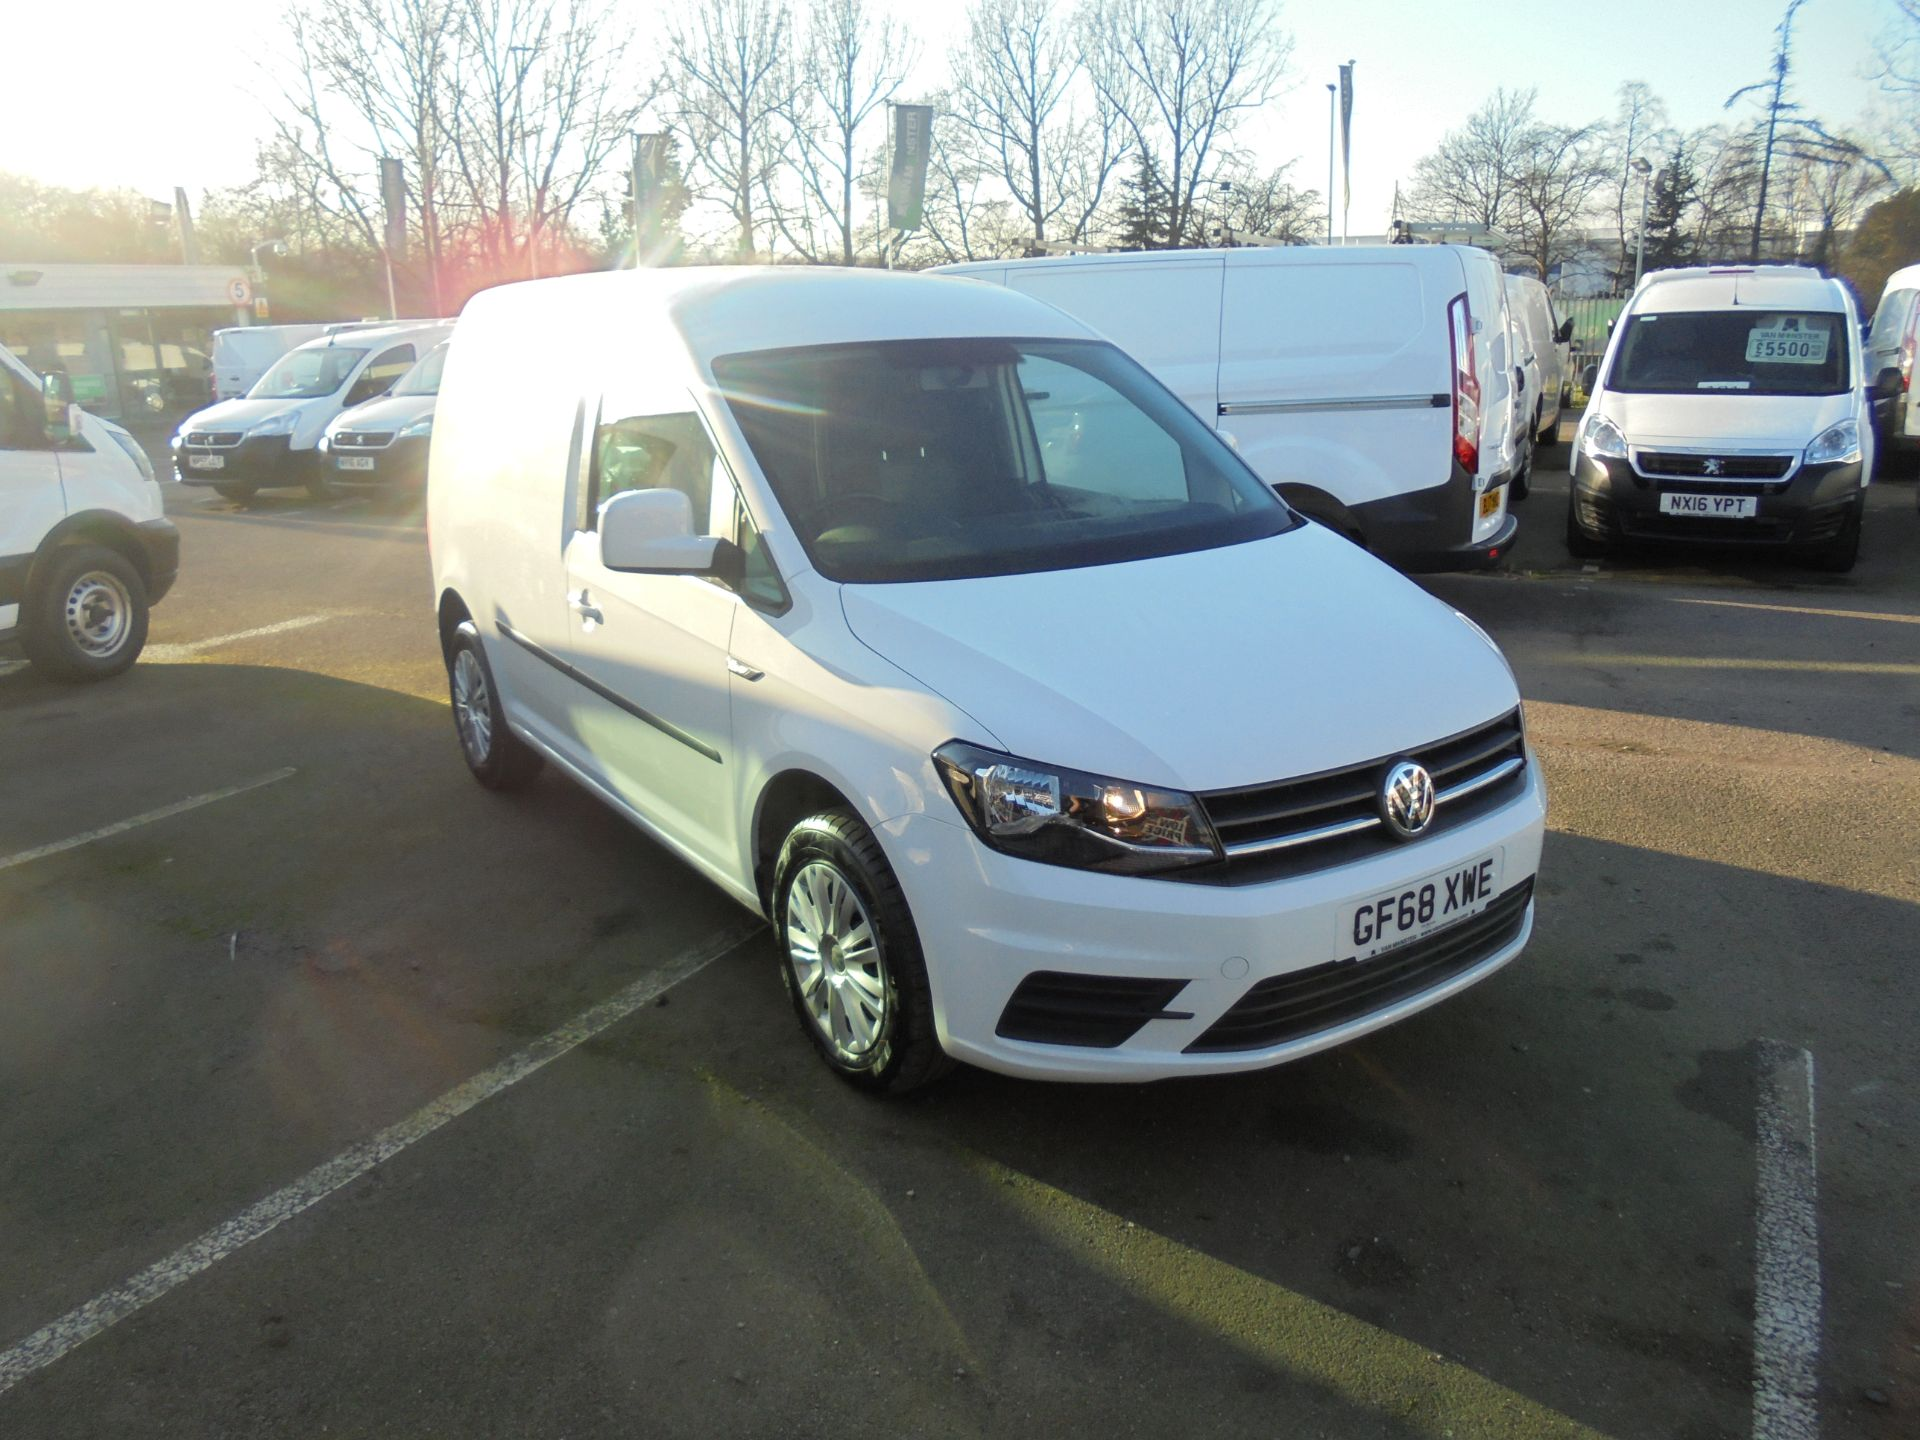 2018 Volkswagen Caddy 2.0 Tdi Bluemotion Tech 102Ps Trendline [Ac] Van (GF68XWE)